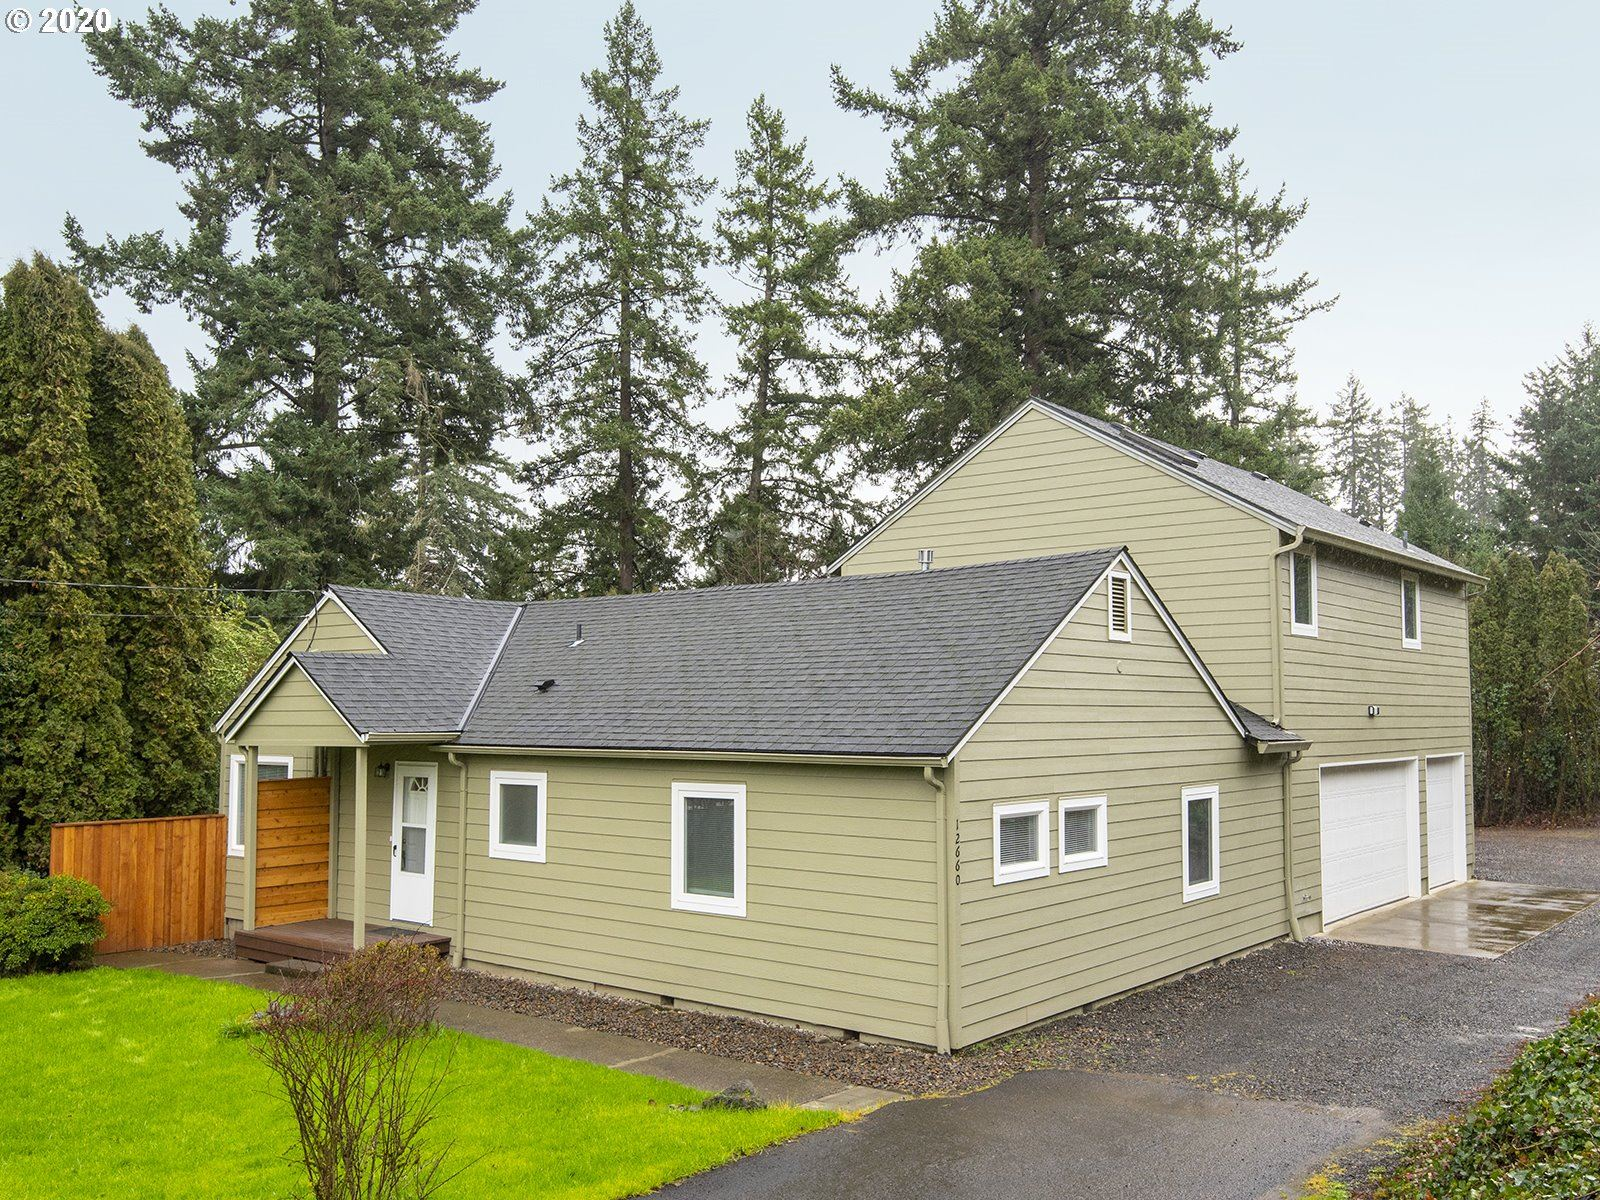 12660 SW 135TH AVE, Tigard, OR 97223 - MLS#: 20205642